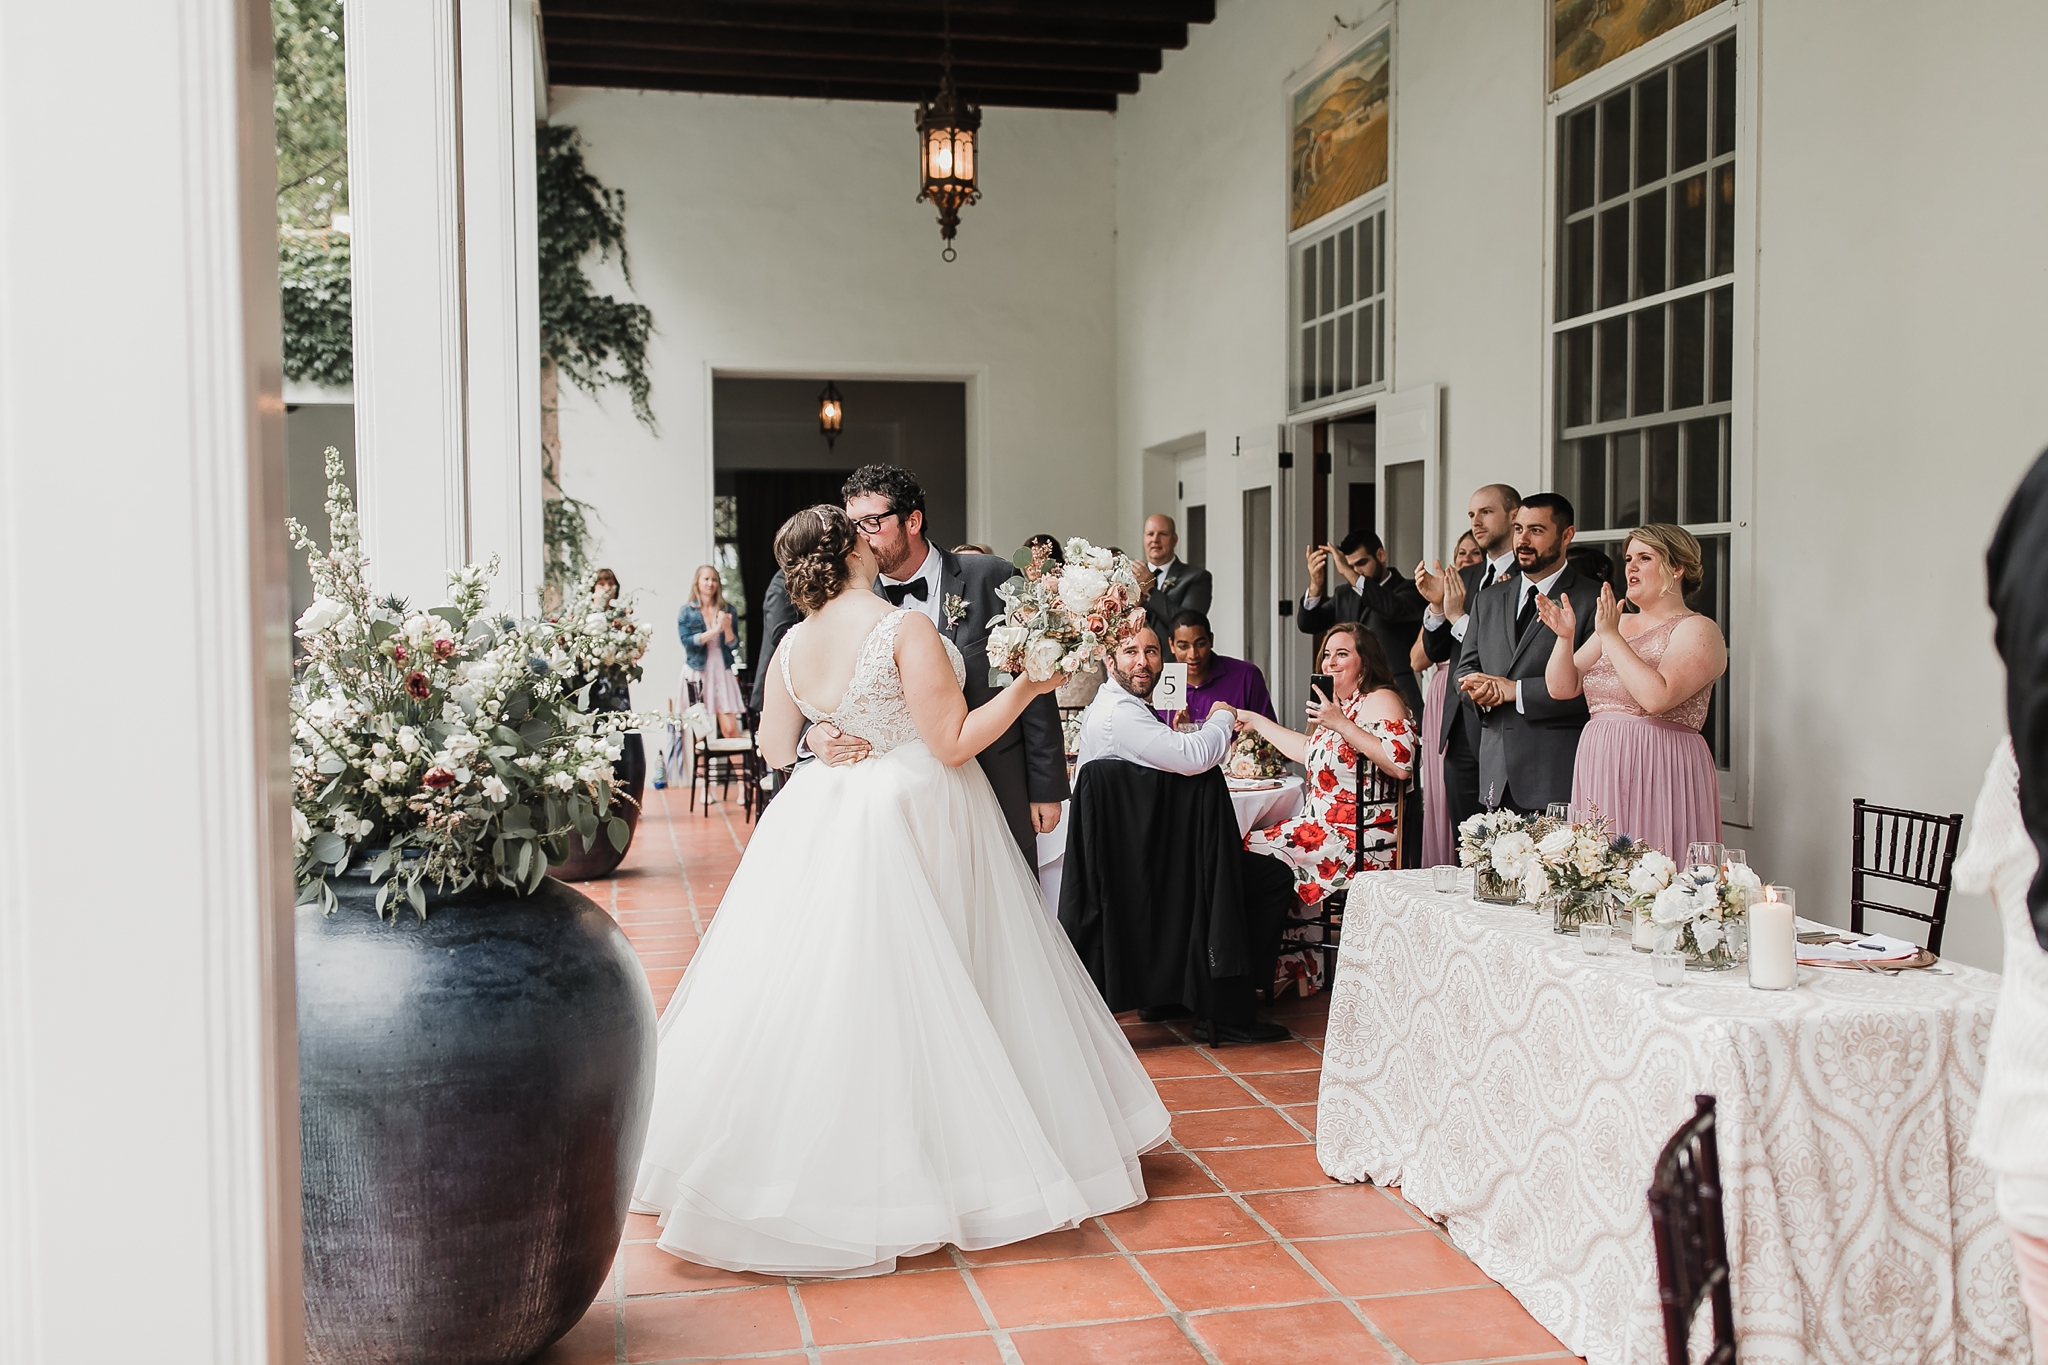 Alicia+lucia+photography+-+albuquerque+wedding+photographer+-+santa+fe+wedding+photography+-+new+mexico+wedding+photographer+-+new+mexico+wedding+-+summer+wedding+-+los+poblanos+wedding+-+albuquerque+wedding_0096.jpg